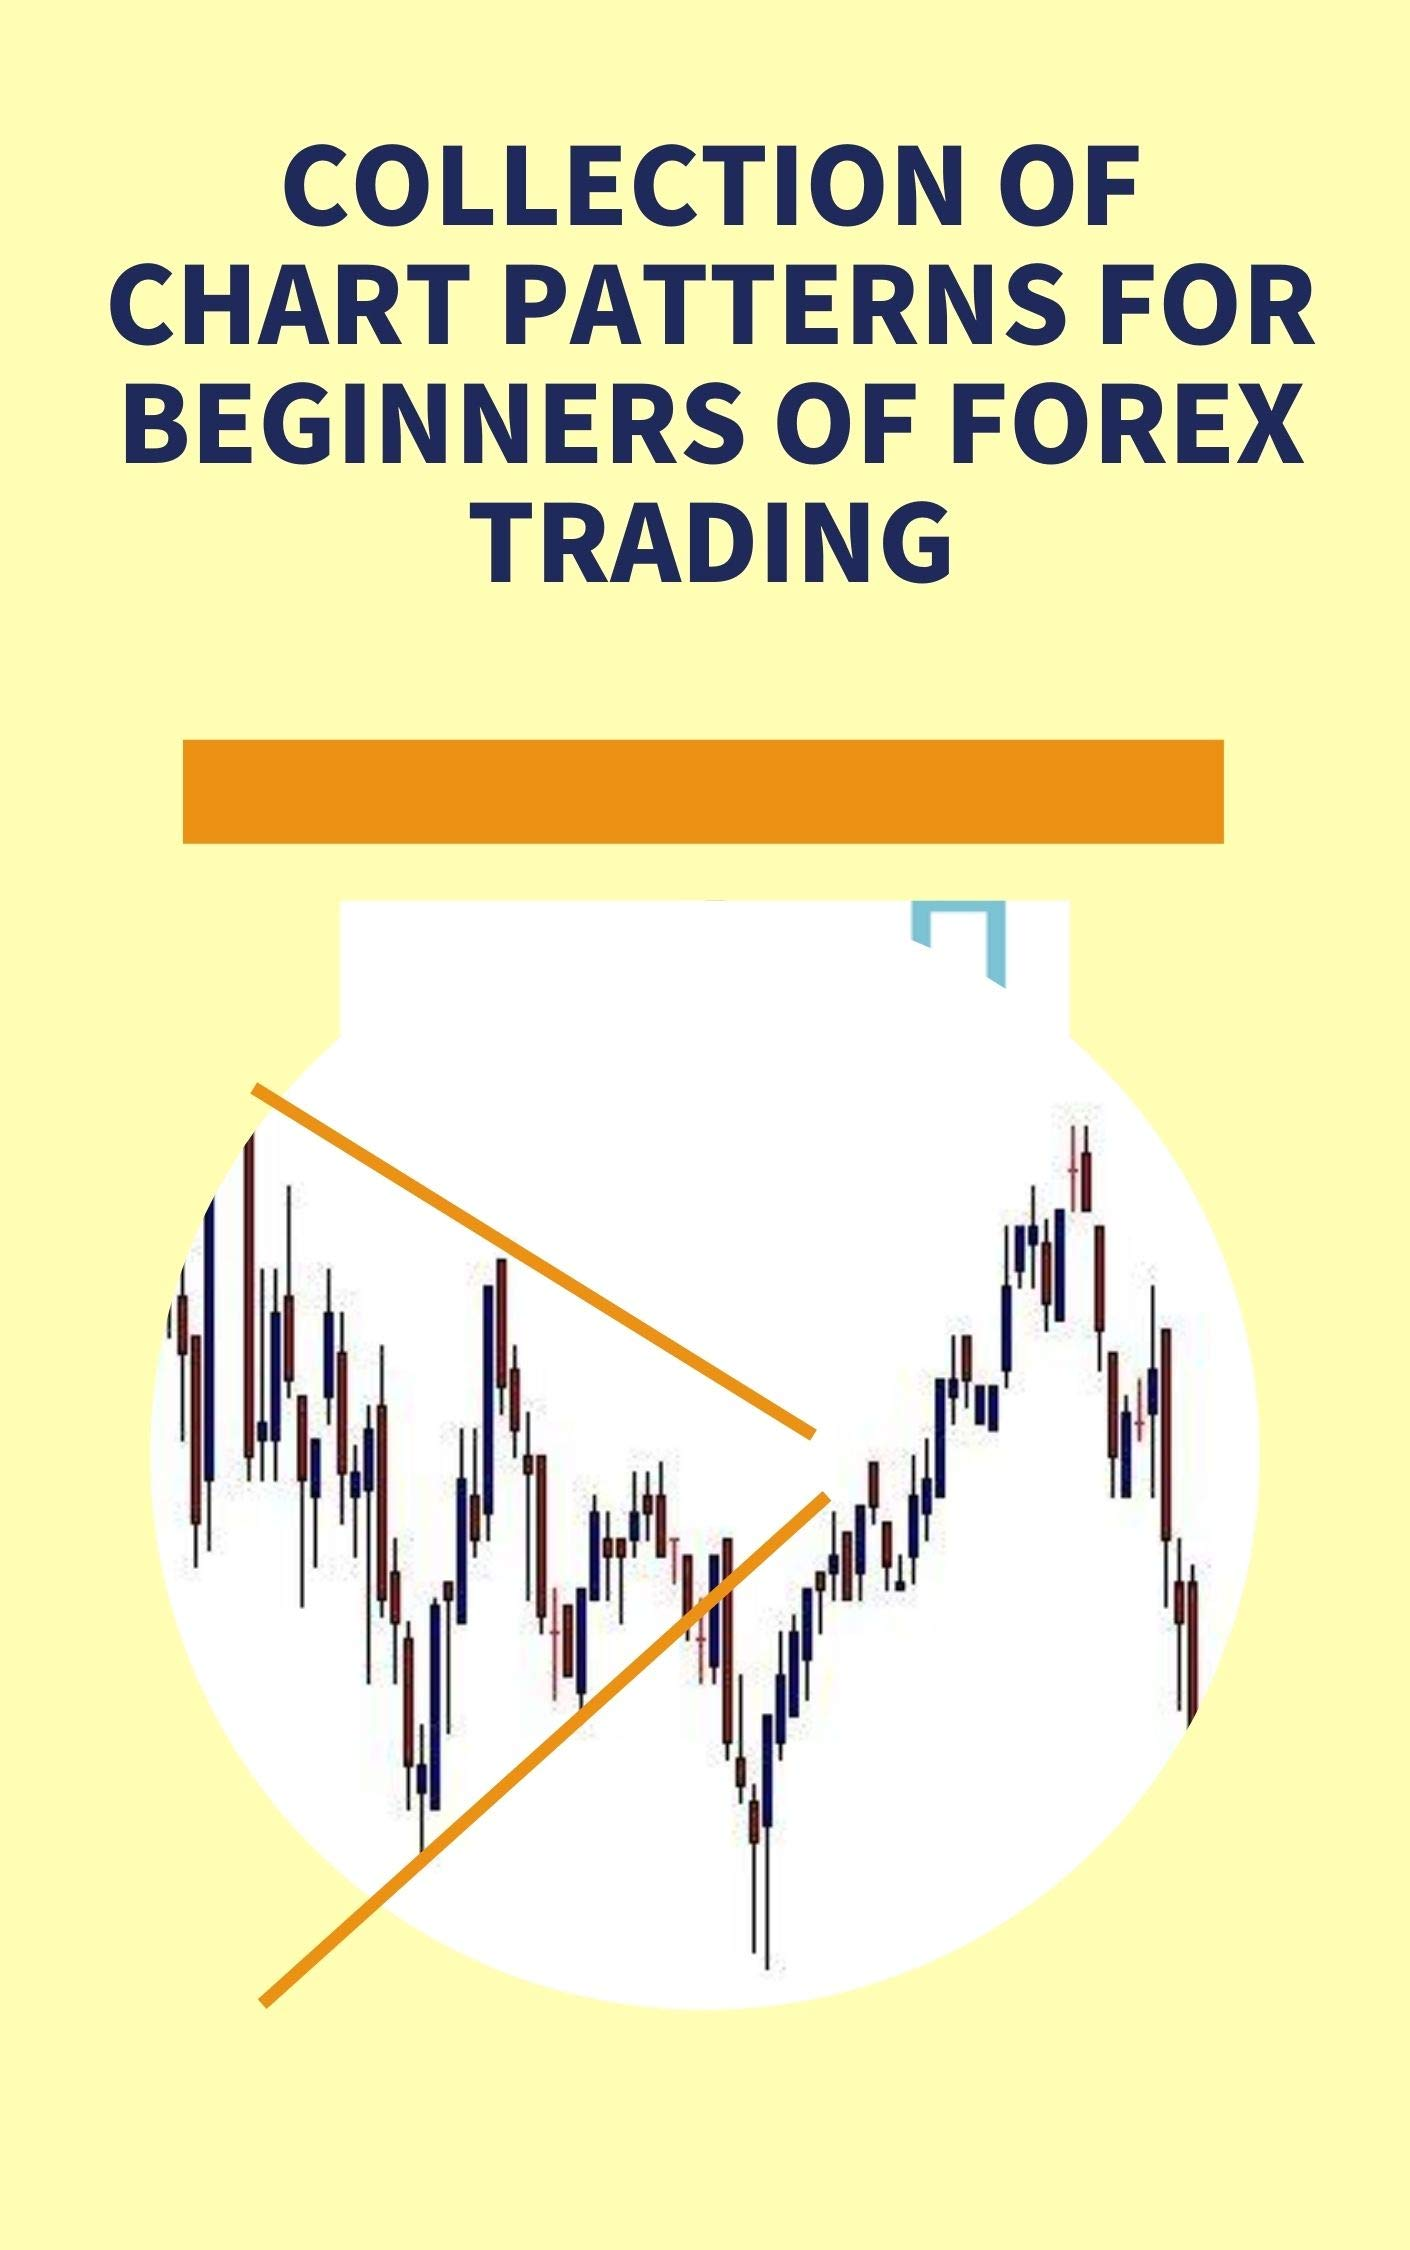 Collection of chart patterns for beginners of forex trading